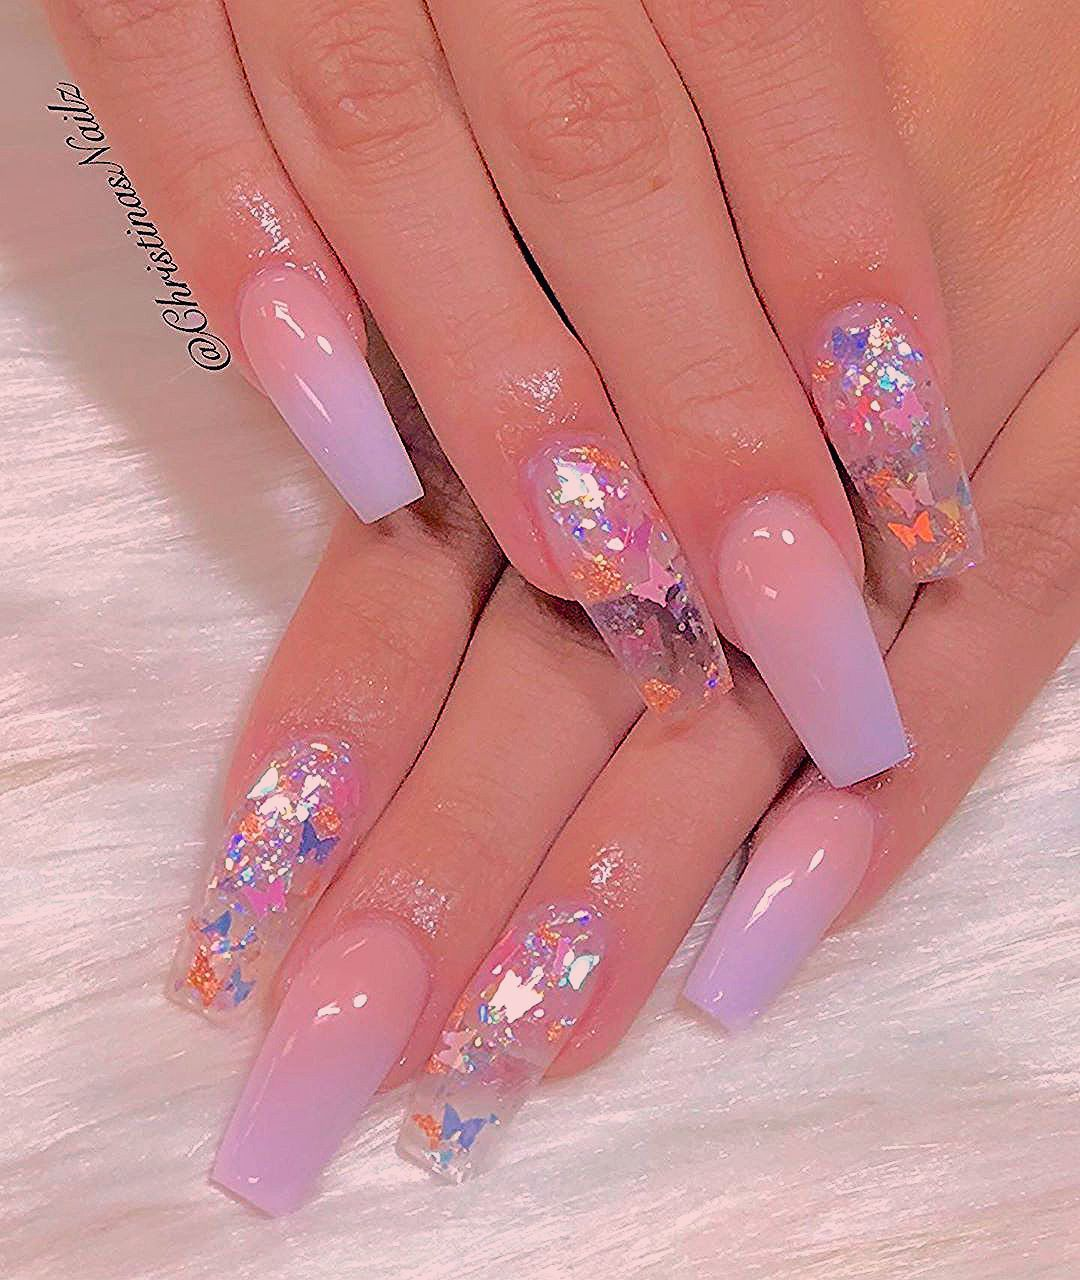 Pin By Abygail Martell On Acrylic Nails In 2020 Purple Acrylic Nails Pretty Acrylic Nails Fire Nails